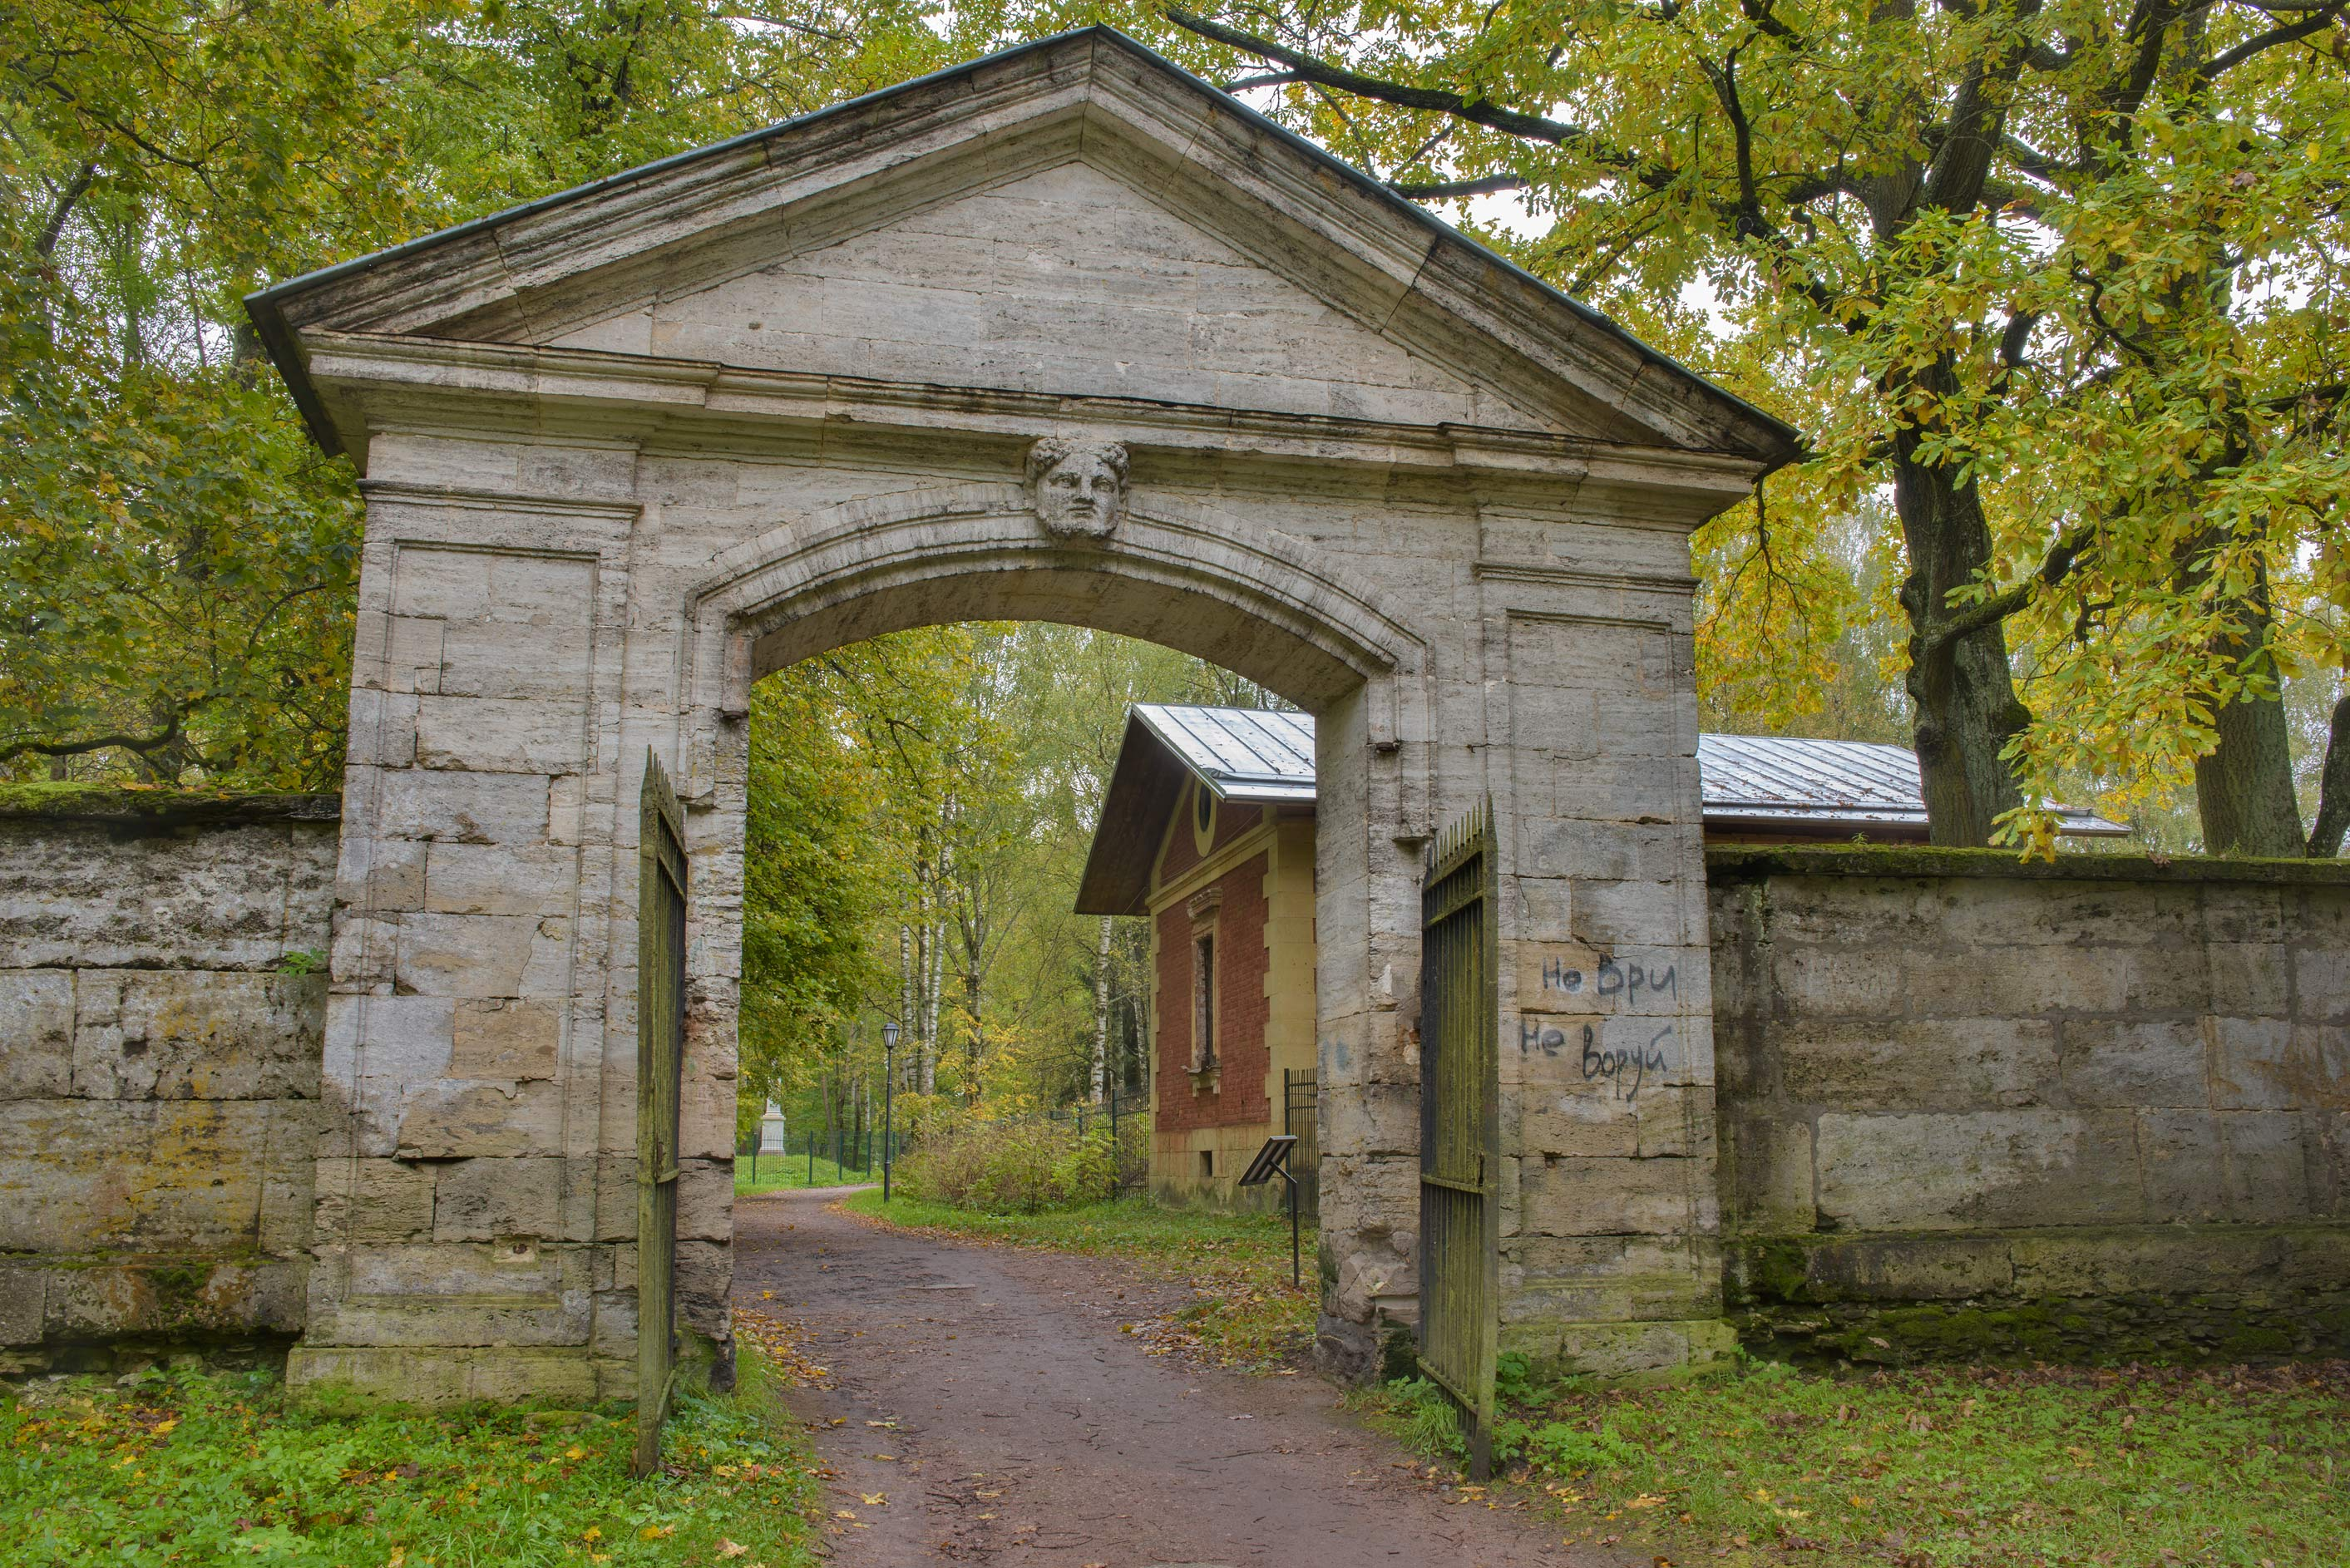 Silvia Gate in Gatchina Park. Gatchina, a suburb of St.Petersburg, Russia